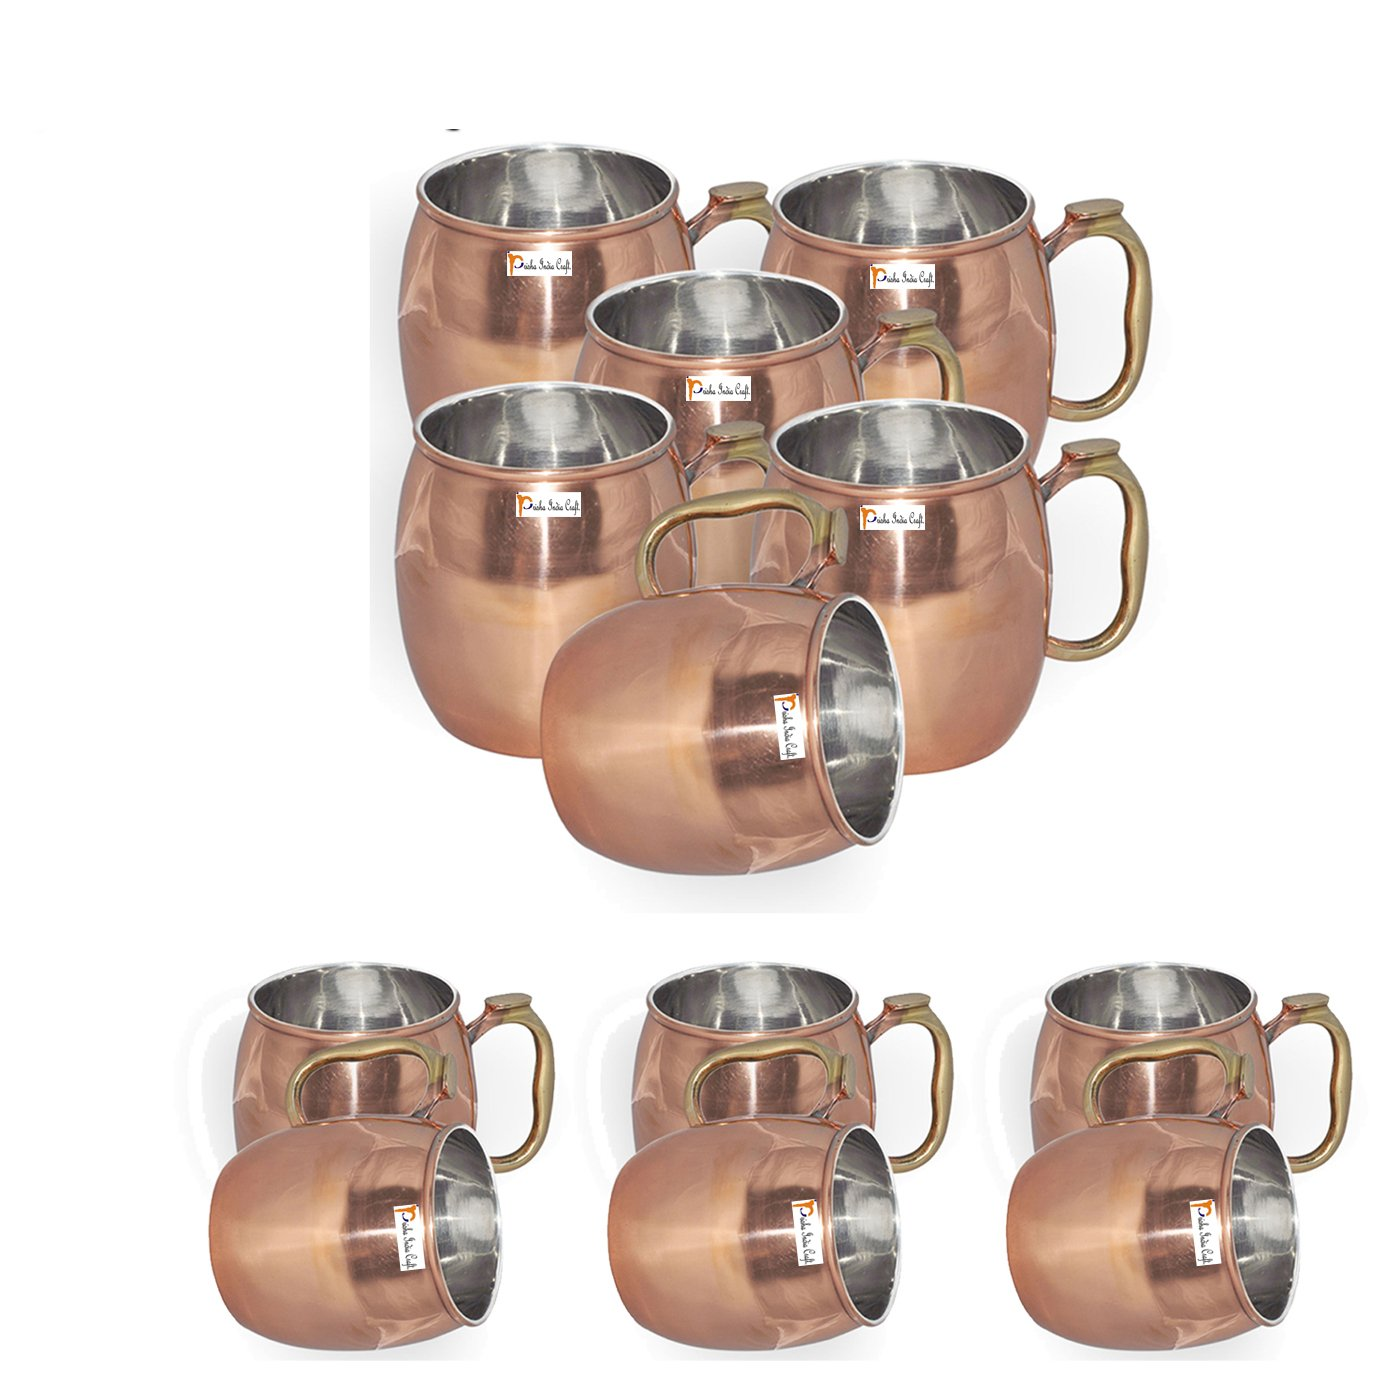 Set of 12 - Prisha India Craft ® Copper Plating Stainless Steel Best Quality Mule Mug 550 ML / 18, Thumb Handle Premium Moscow Mule Copper Mug, Moscow Mule Cocktail Cup, Copper Mugs, Cocktail Mugs